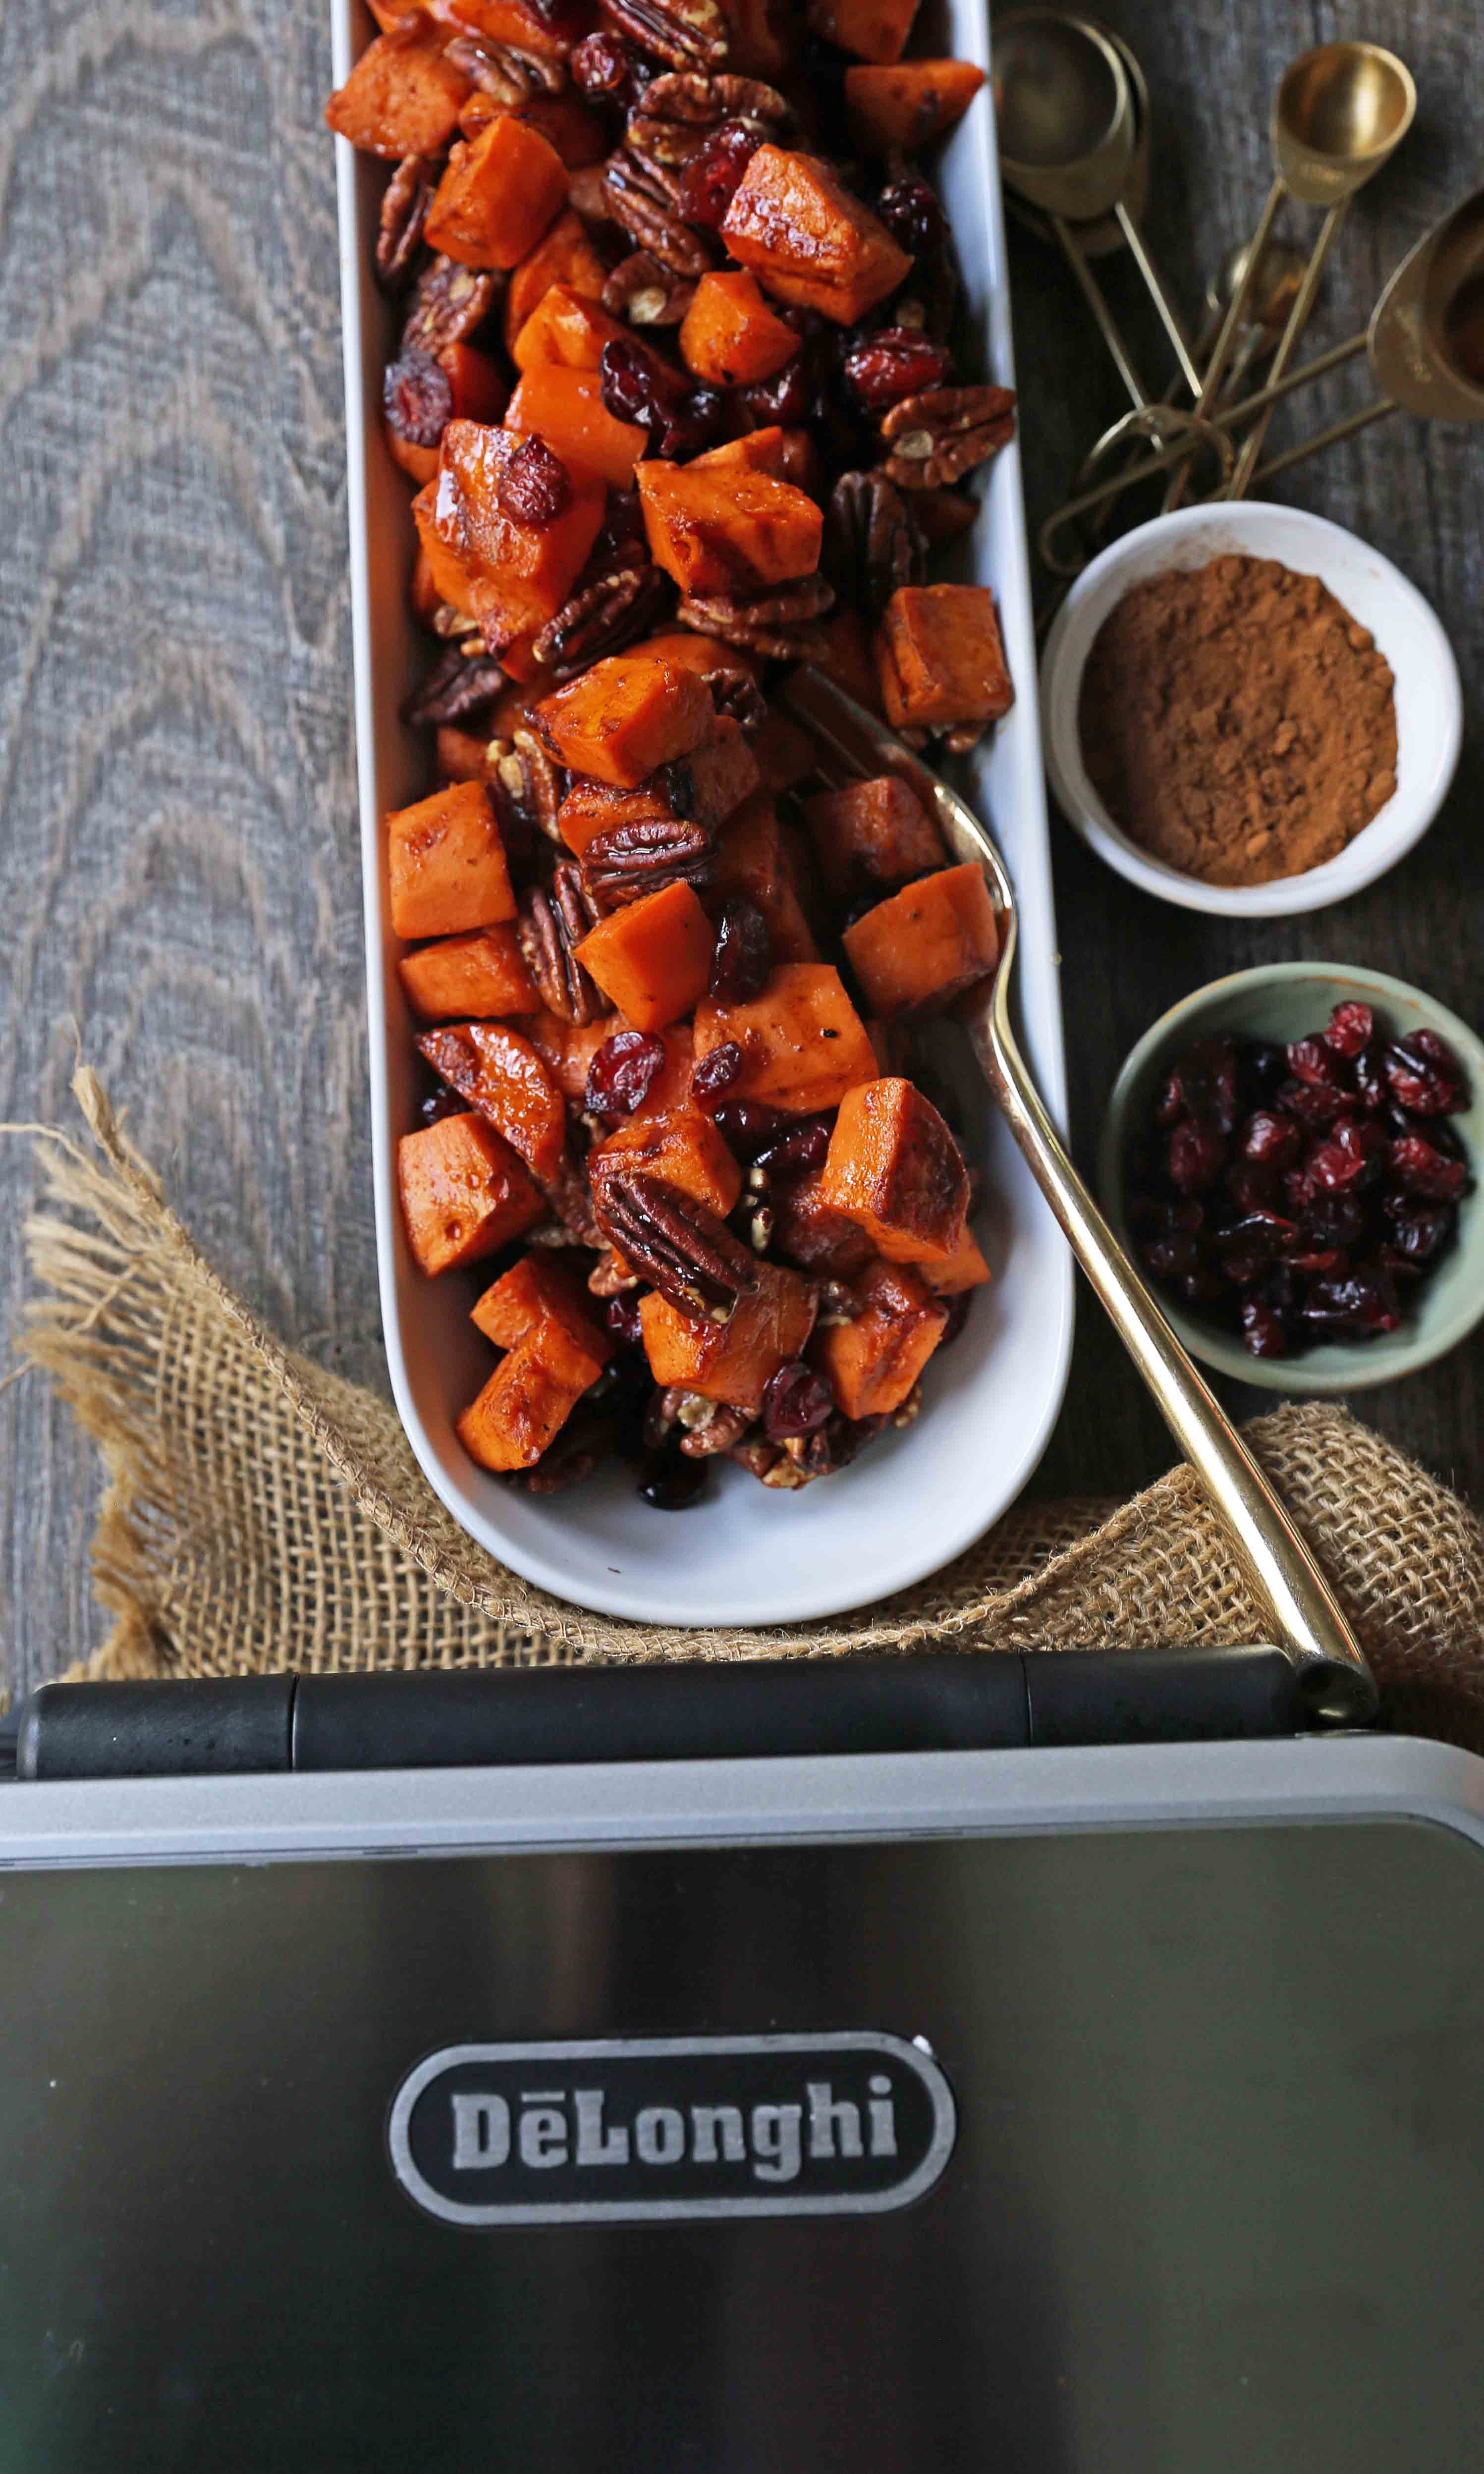 Roasted Sweet Potatoes with Pecans and Cranberries on the grill. An easy, healthy side dish made with cinnamon roasted sweet potatoes, toasted pecans, and sweet and tart dried cranberries. www.modernhoney.com #sidedish #sweetpotatoes #sweetpotatoespecan #roastedsweetpotatoes